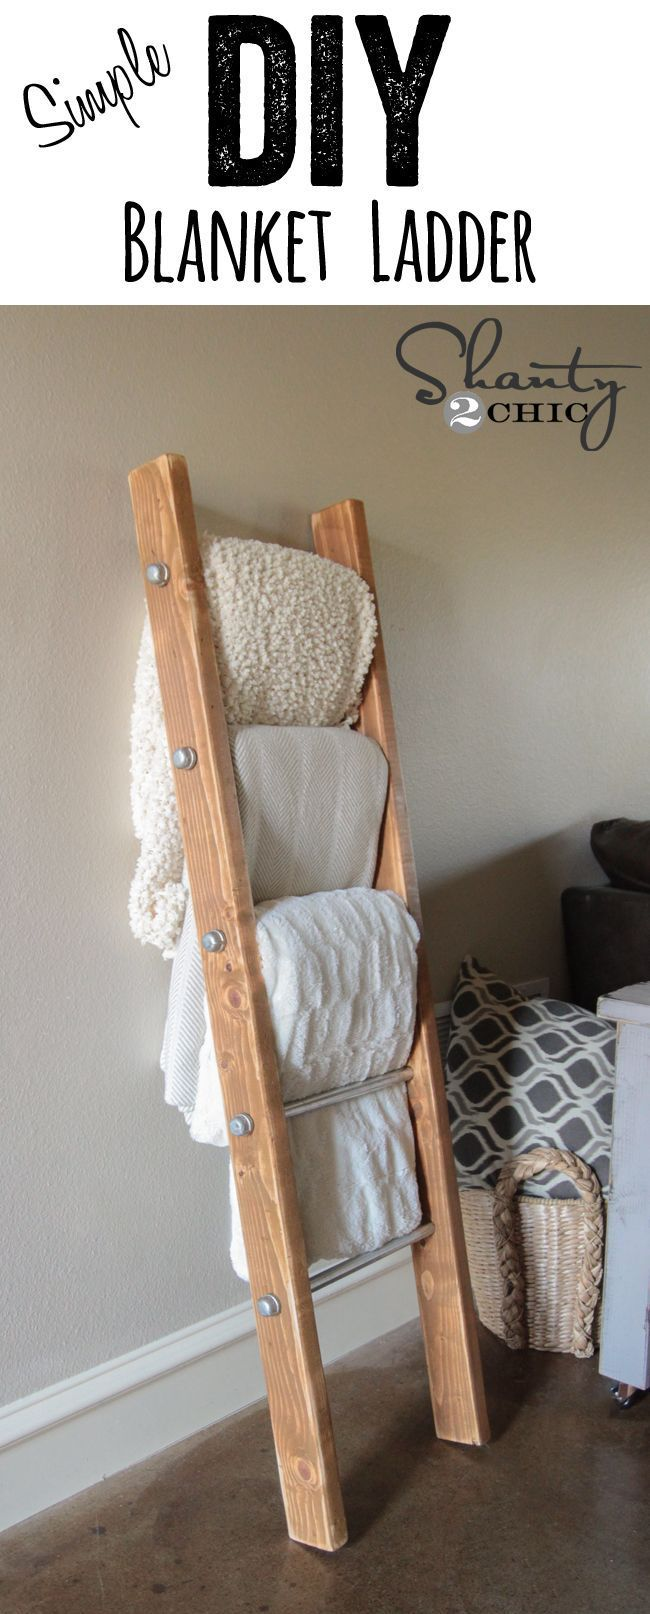 DIY Wood and Metal Pipe Blanket Ladder… Seriously SO simple and so cute! www.shanty-2-chic.com Bedroom ideas #decor #design